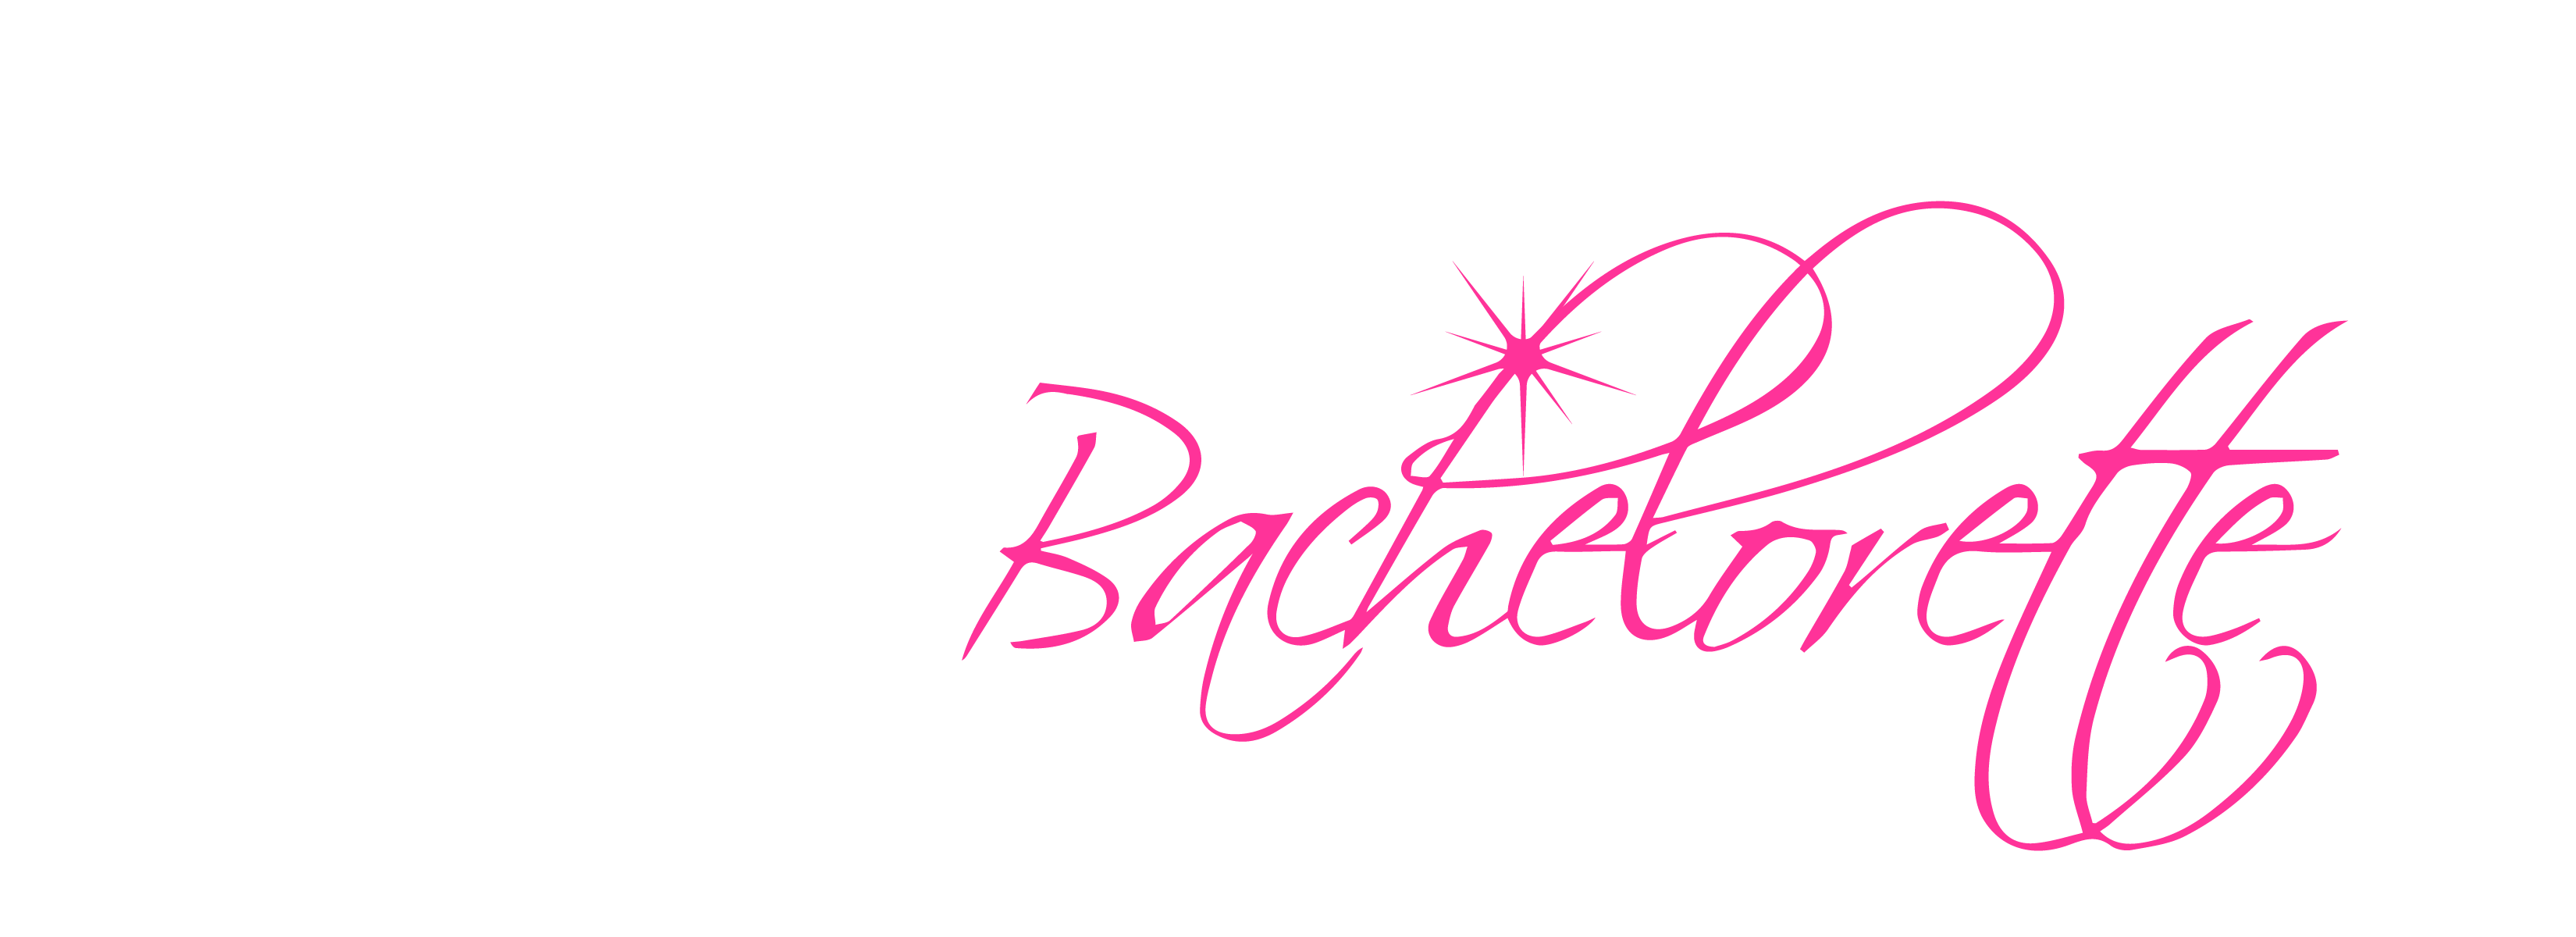 Bachelorette party png. Vip chicago planners